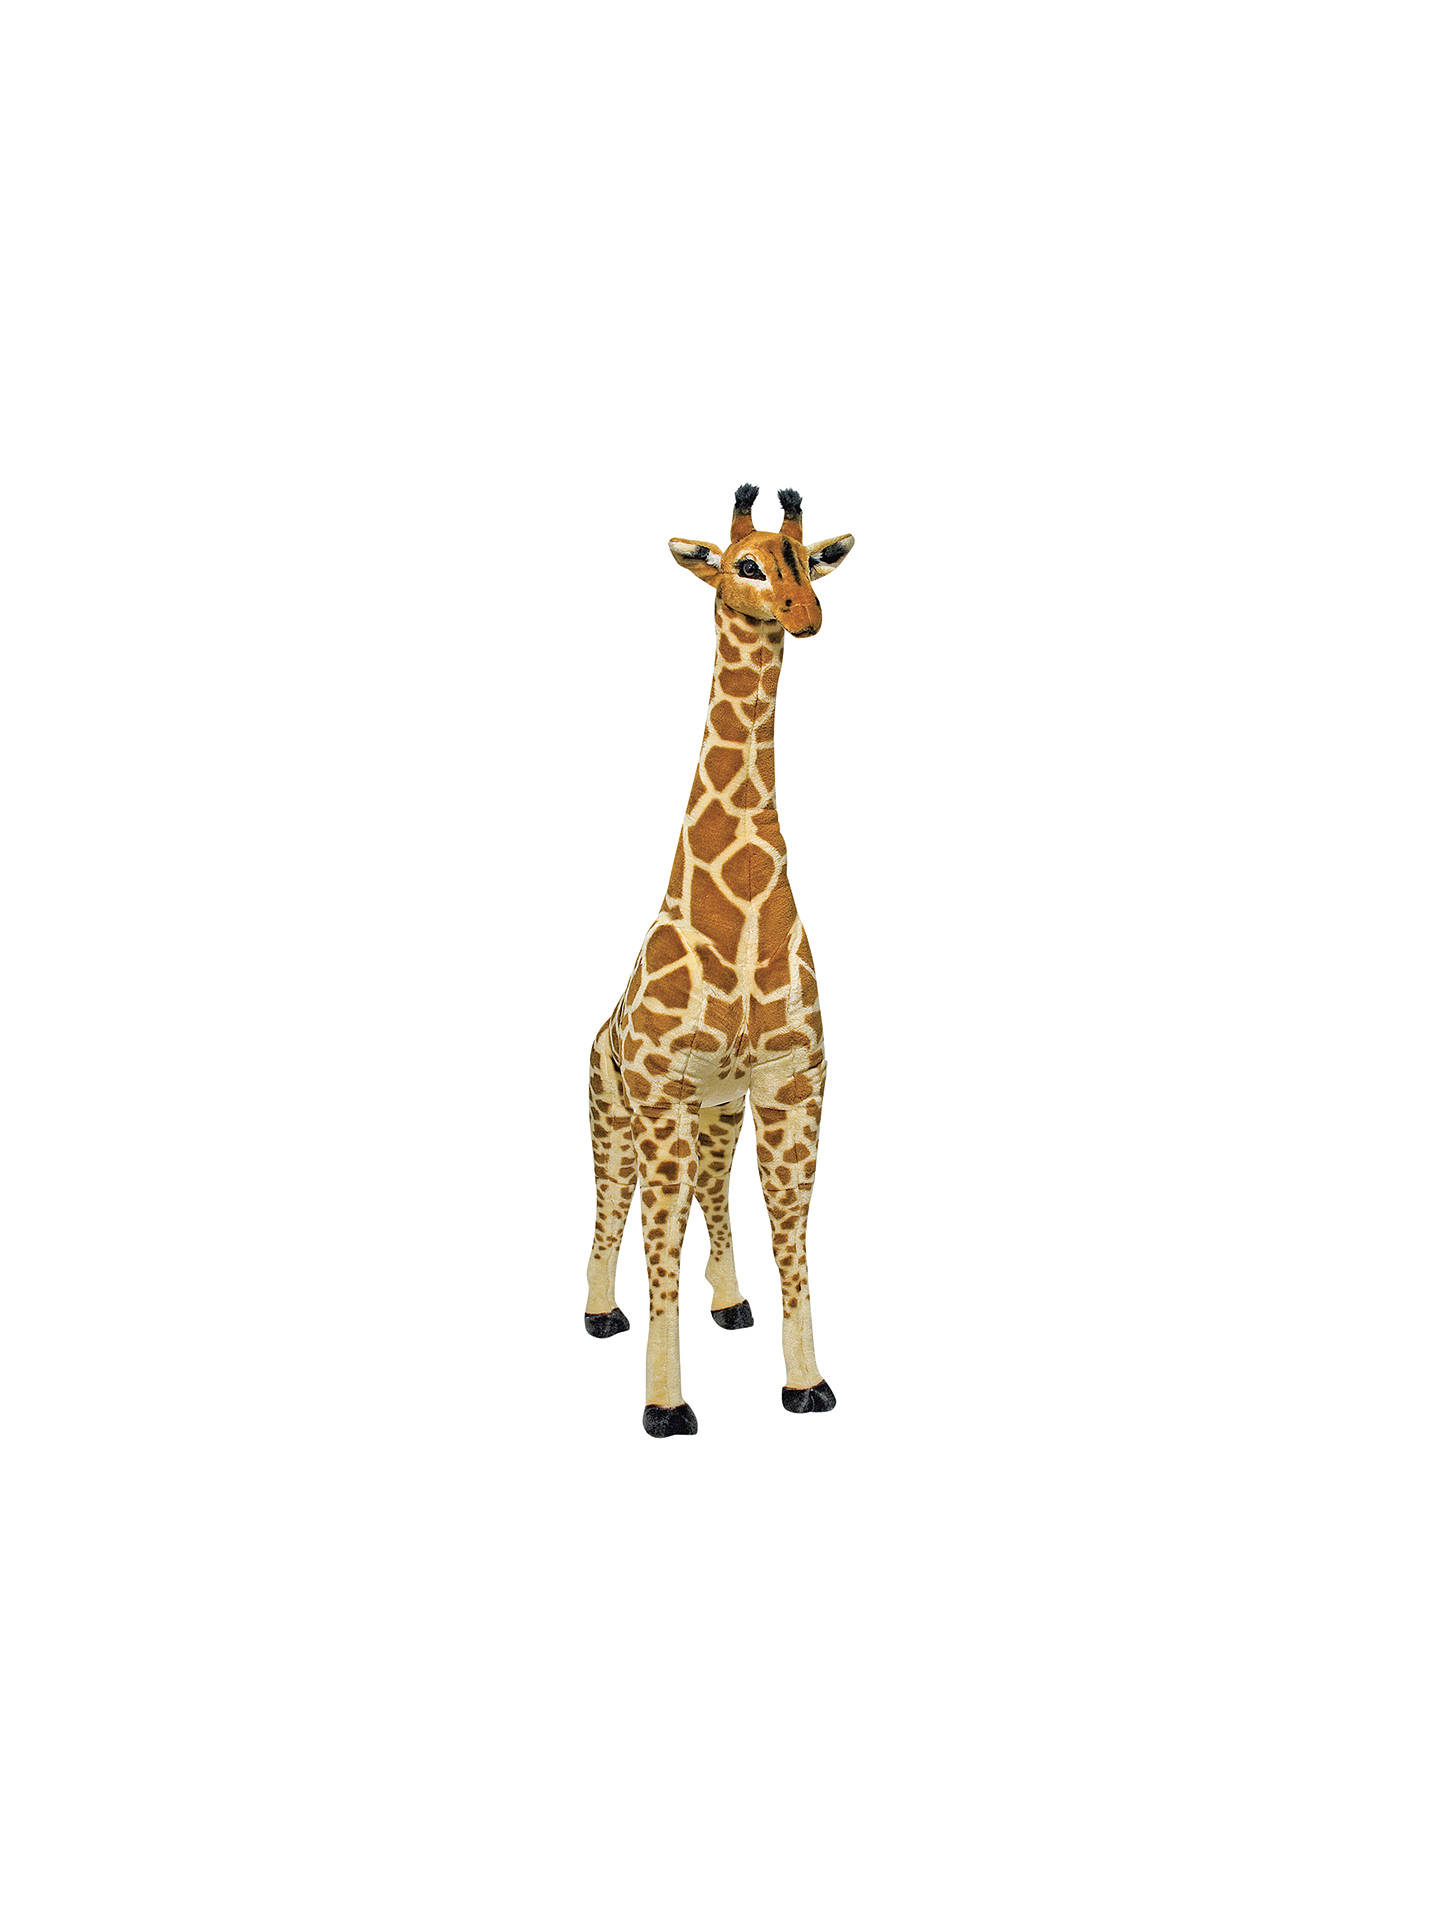 Melissa Doug Giraffe Plush Soft Toy